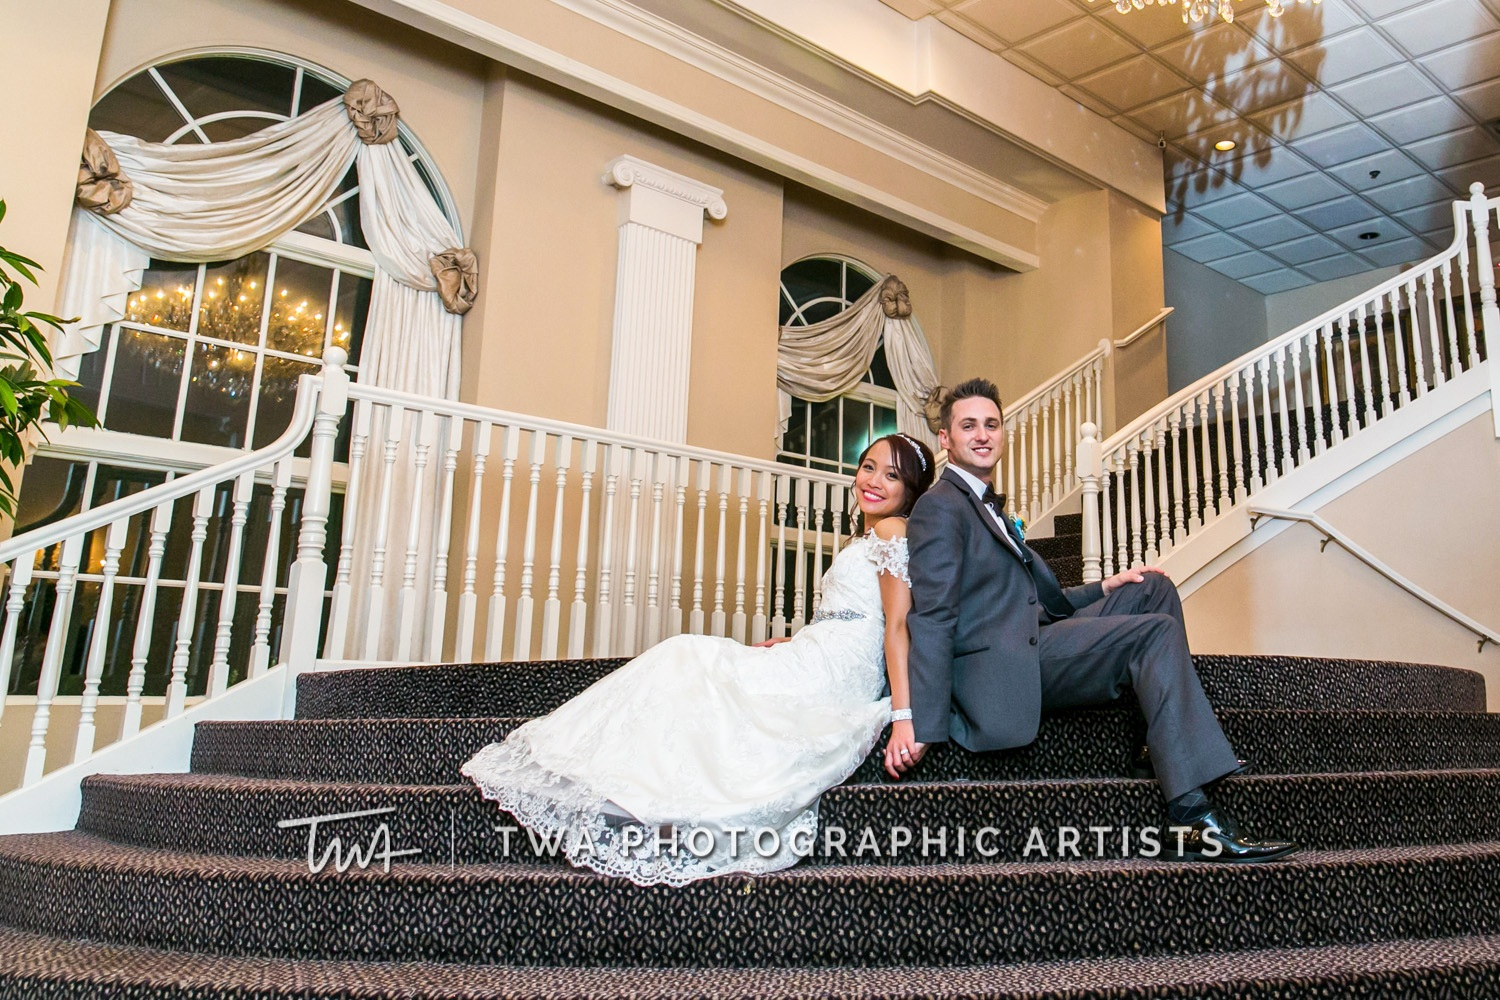 Chicago-Wedding-Photographer-TWA-Photographic-Artists-Abbington-Banquets_Gaela_Bowles_DR-0854